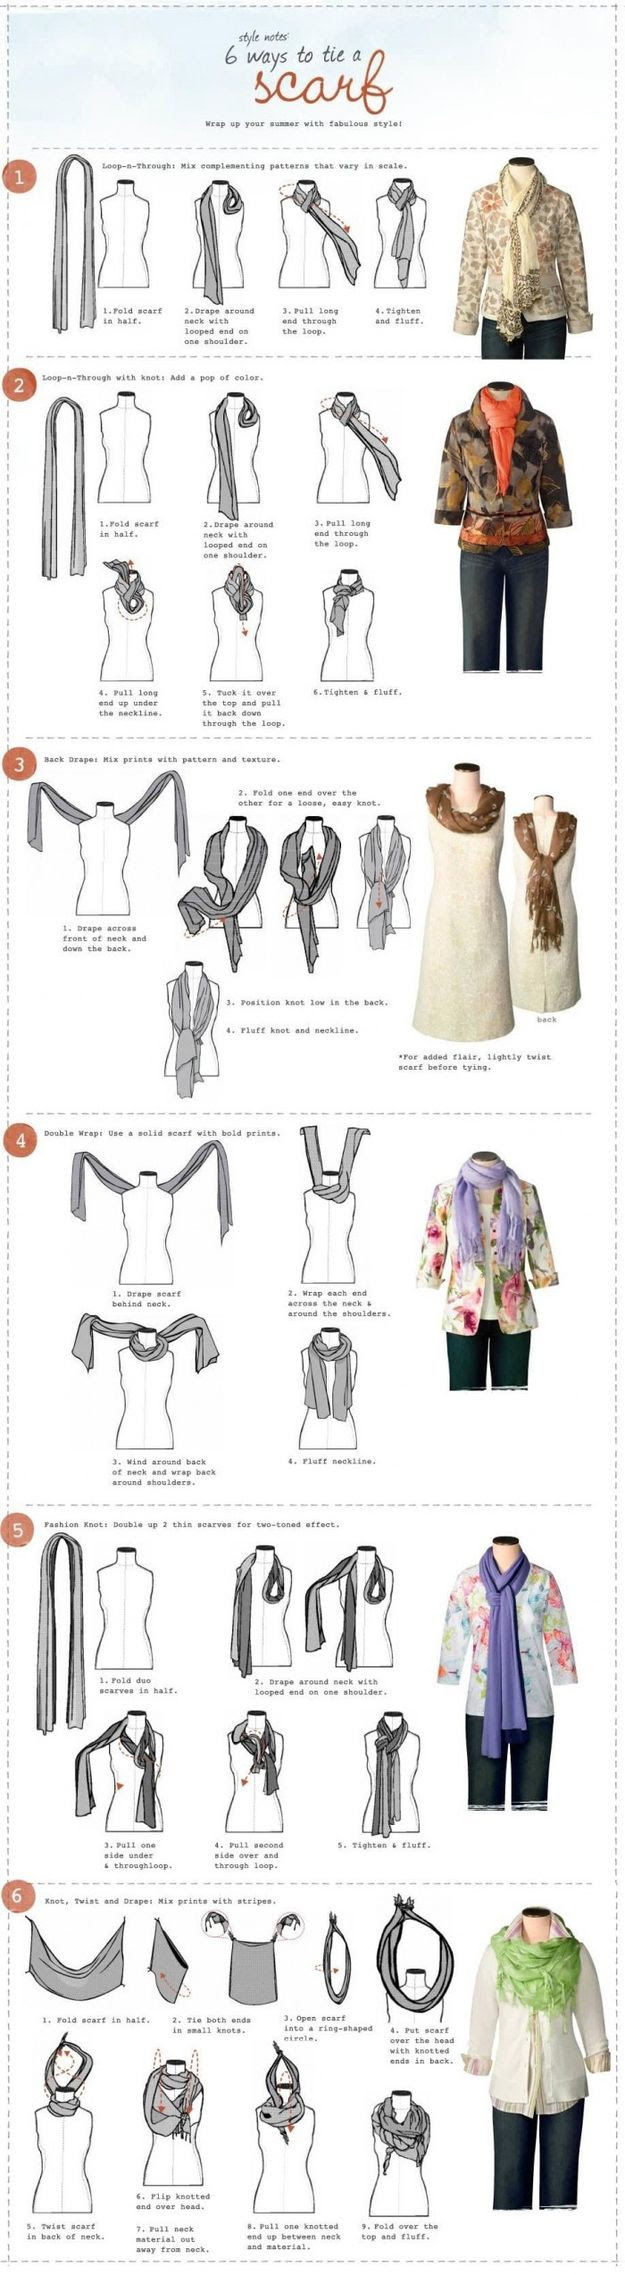 How to Tie a Scarf   21 Incredibly Important Diagrams To Help You Get Through Life